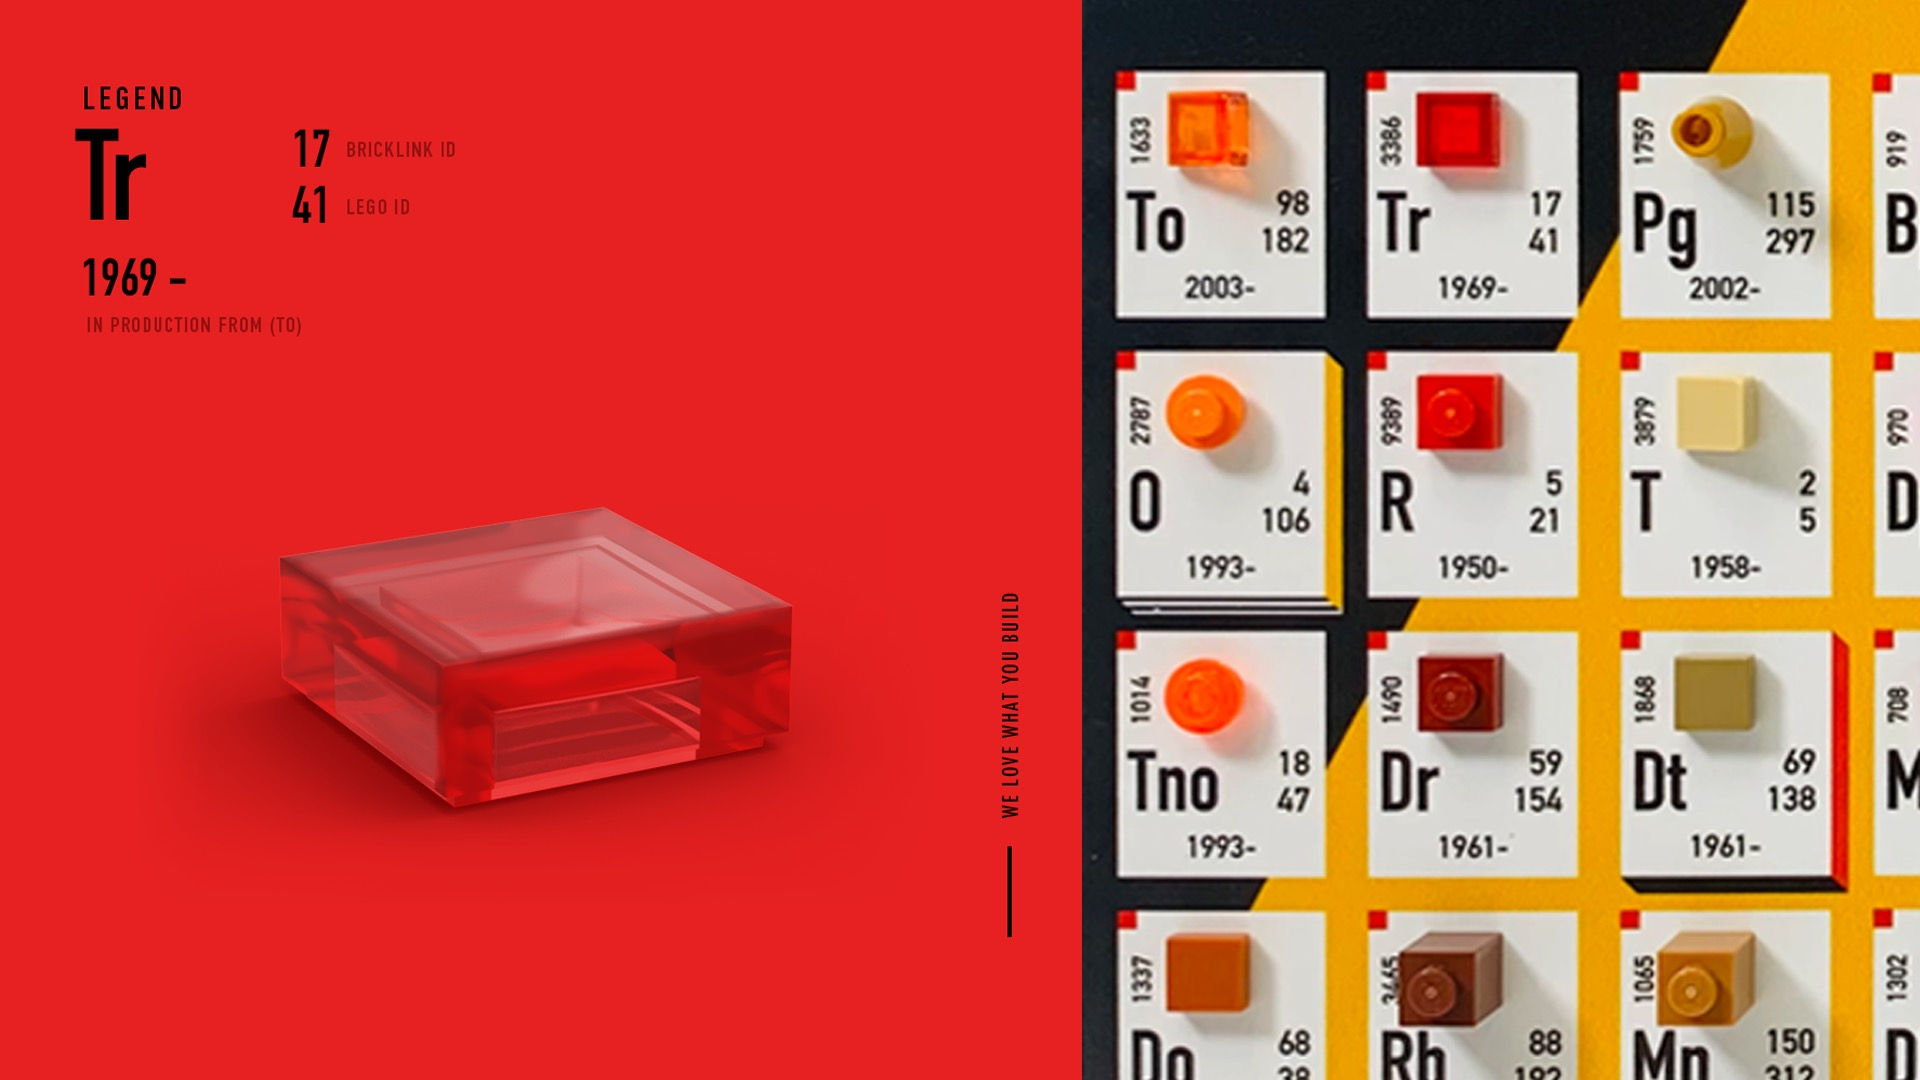 LEGO Periodic Table - Real LEGO elements